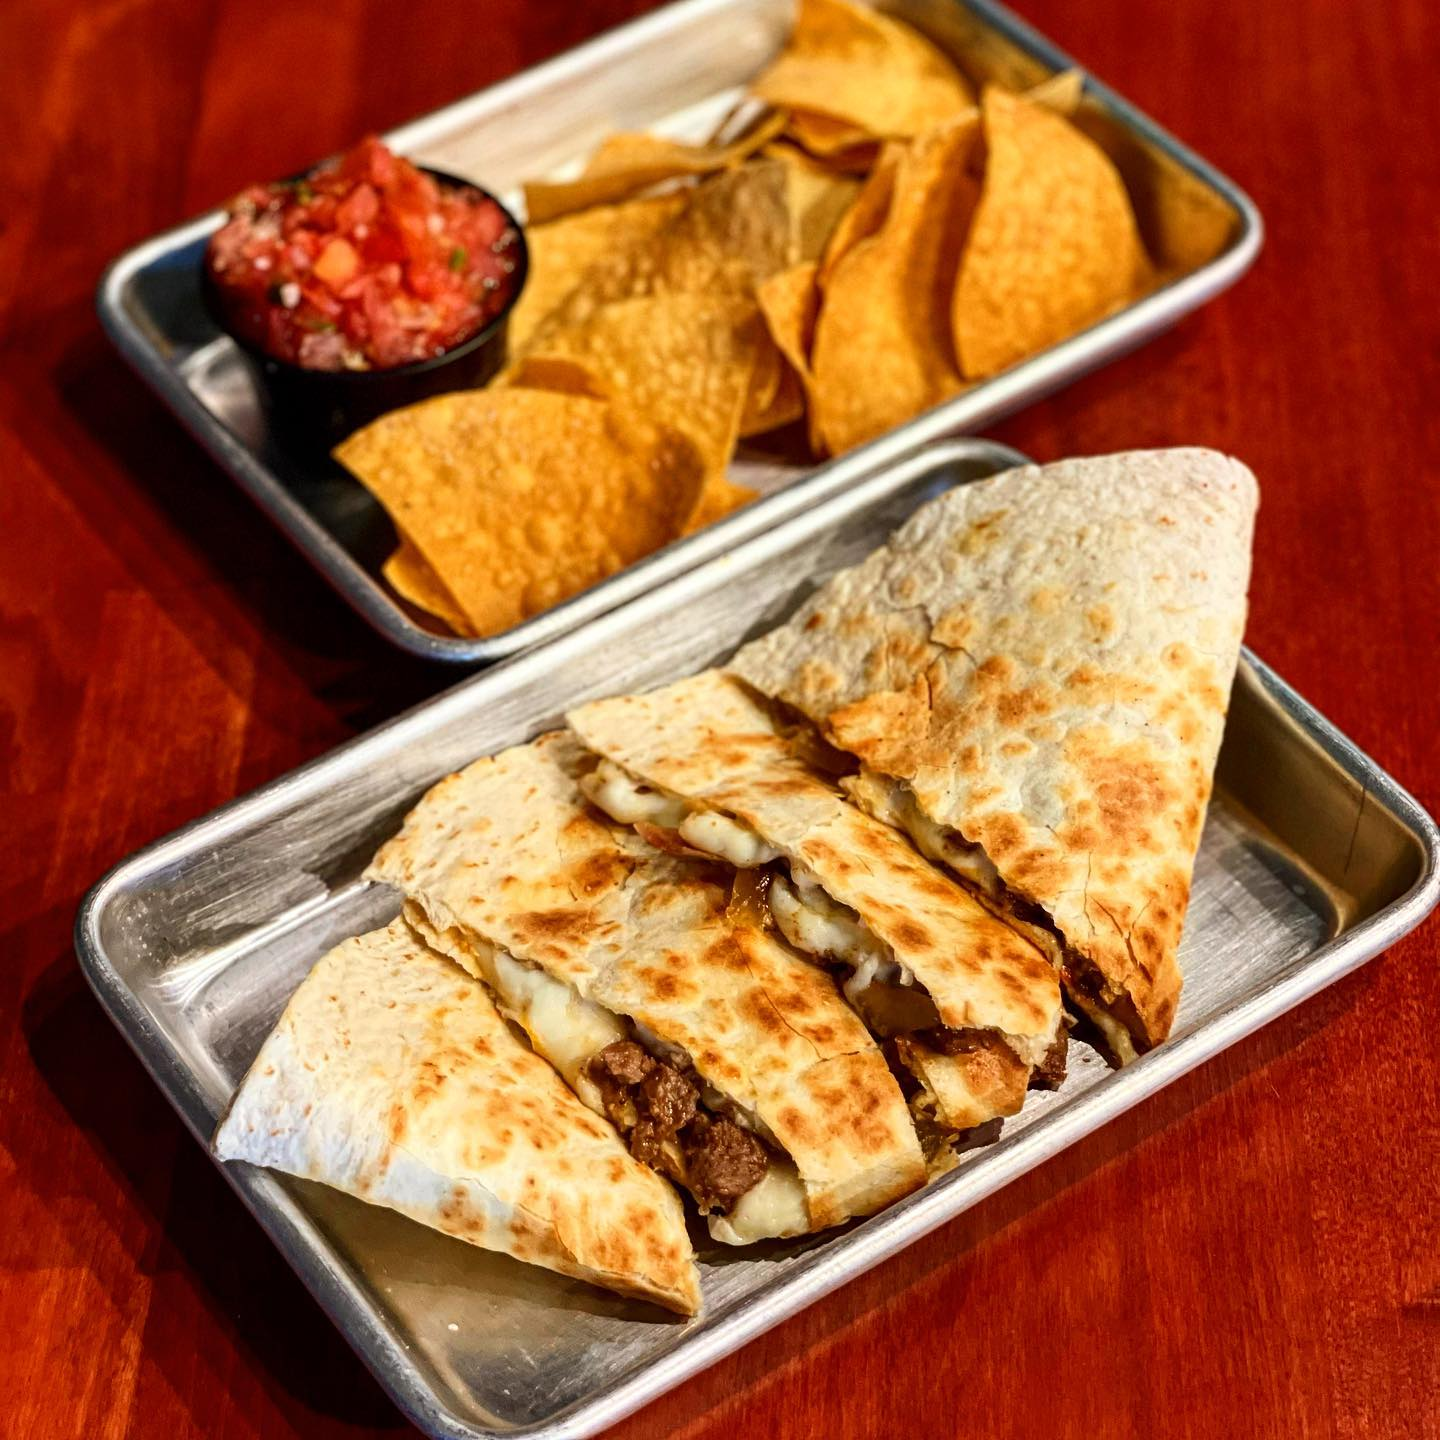 a quesadilla with chips and salsa on the side